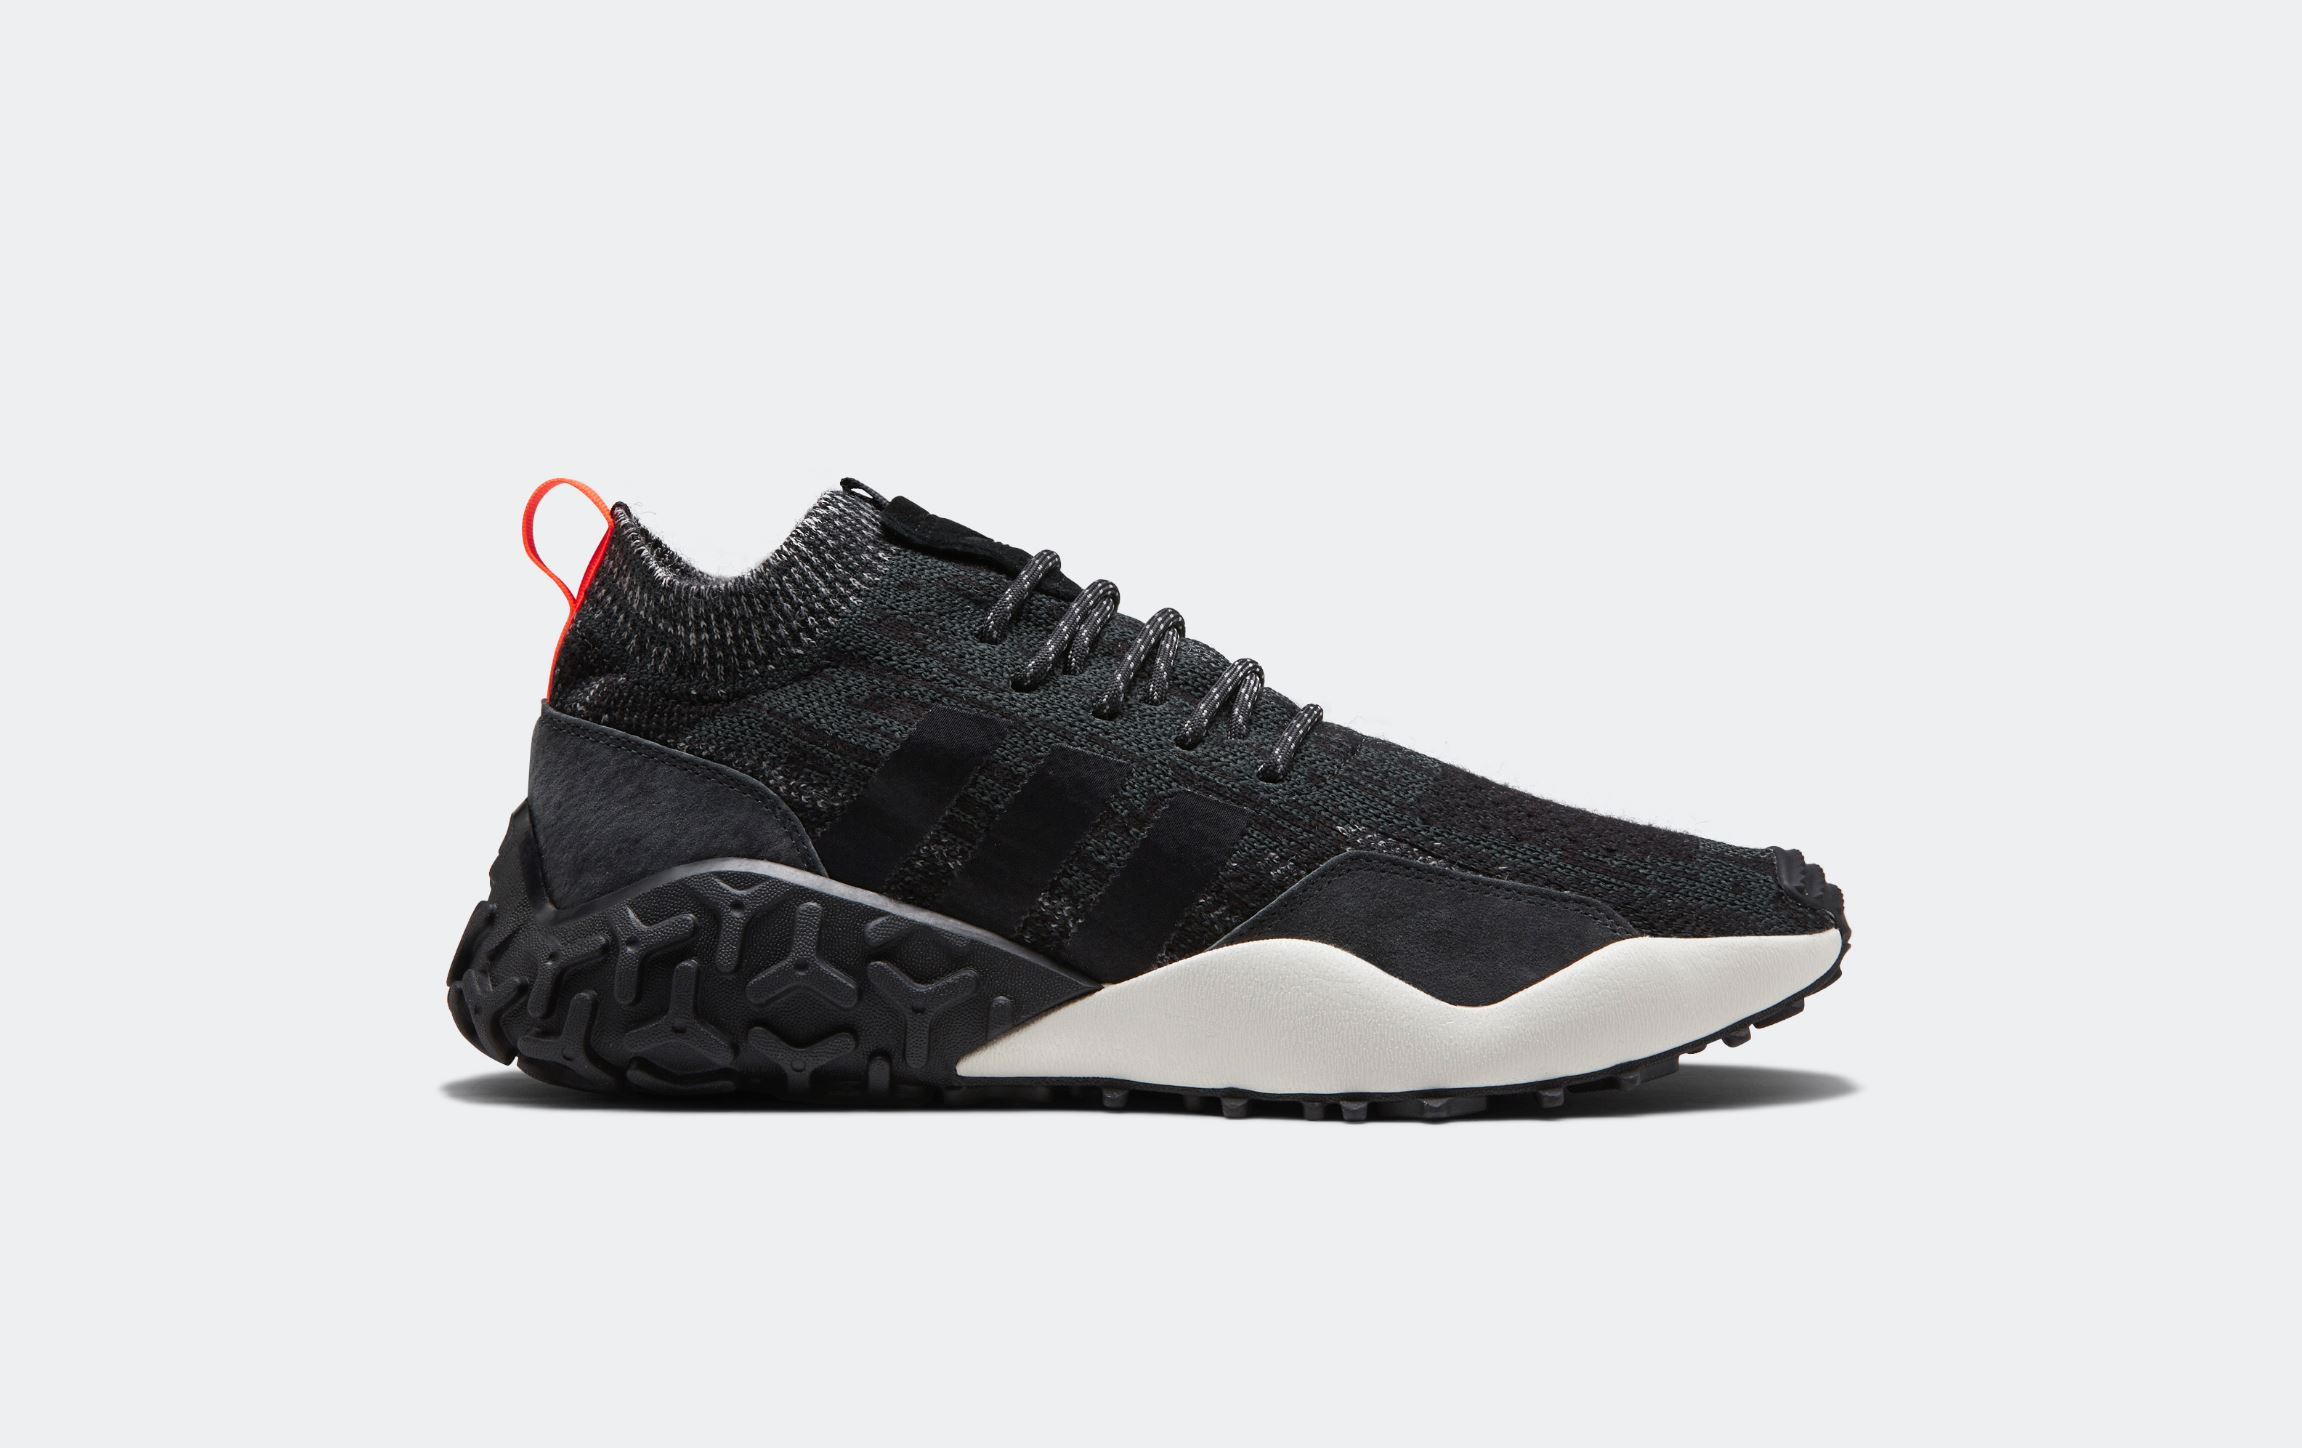 5fbb3af8cc03a https://weartesters.com/zn-footwear-celebrates-one-year-anniversary ...